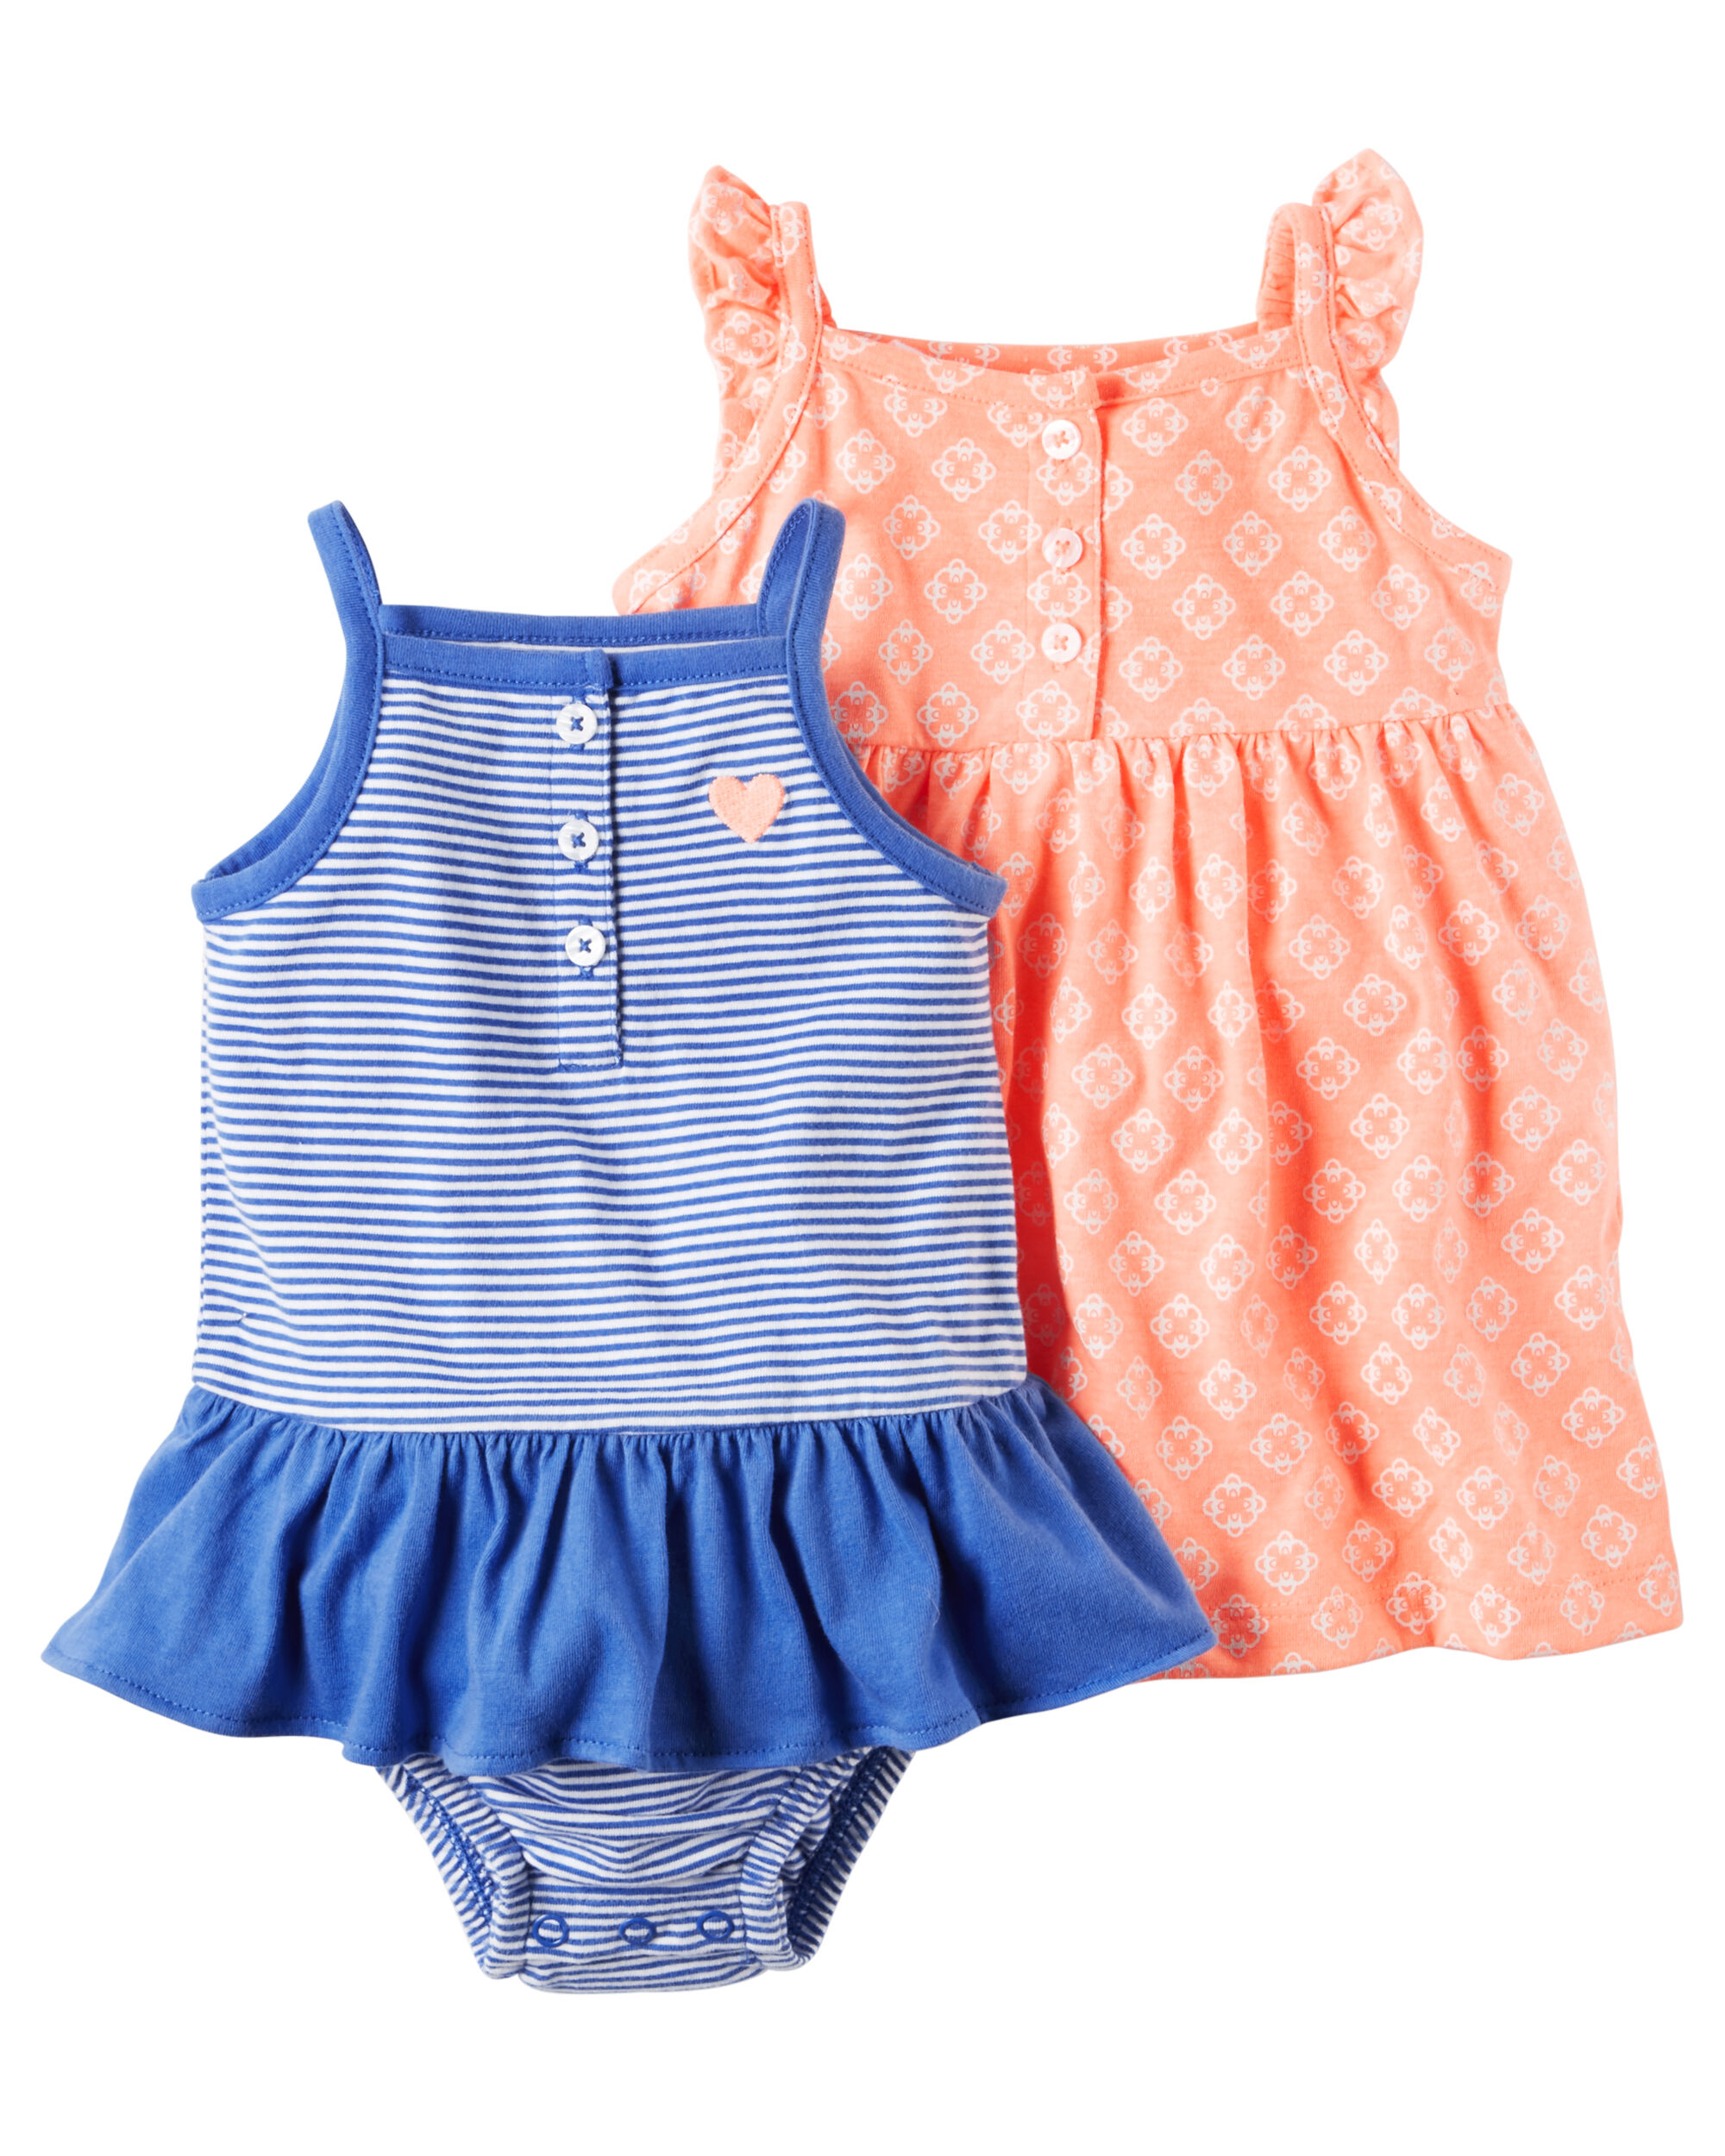 2 Pack Neon Dress & Sunsuit Set